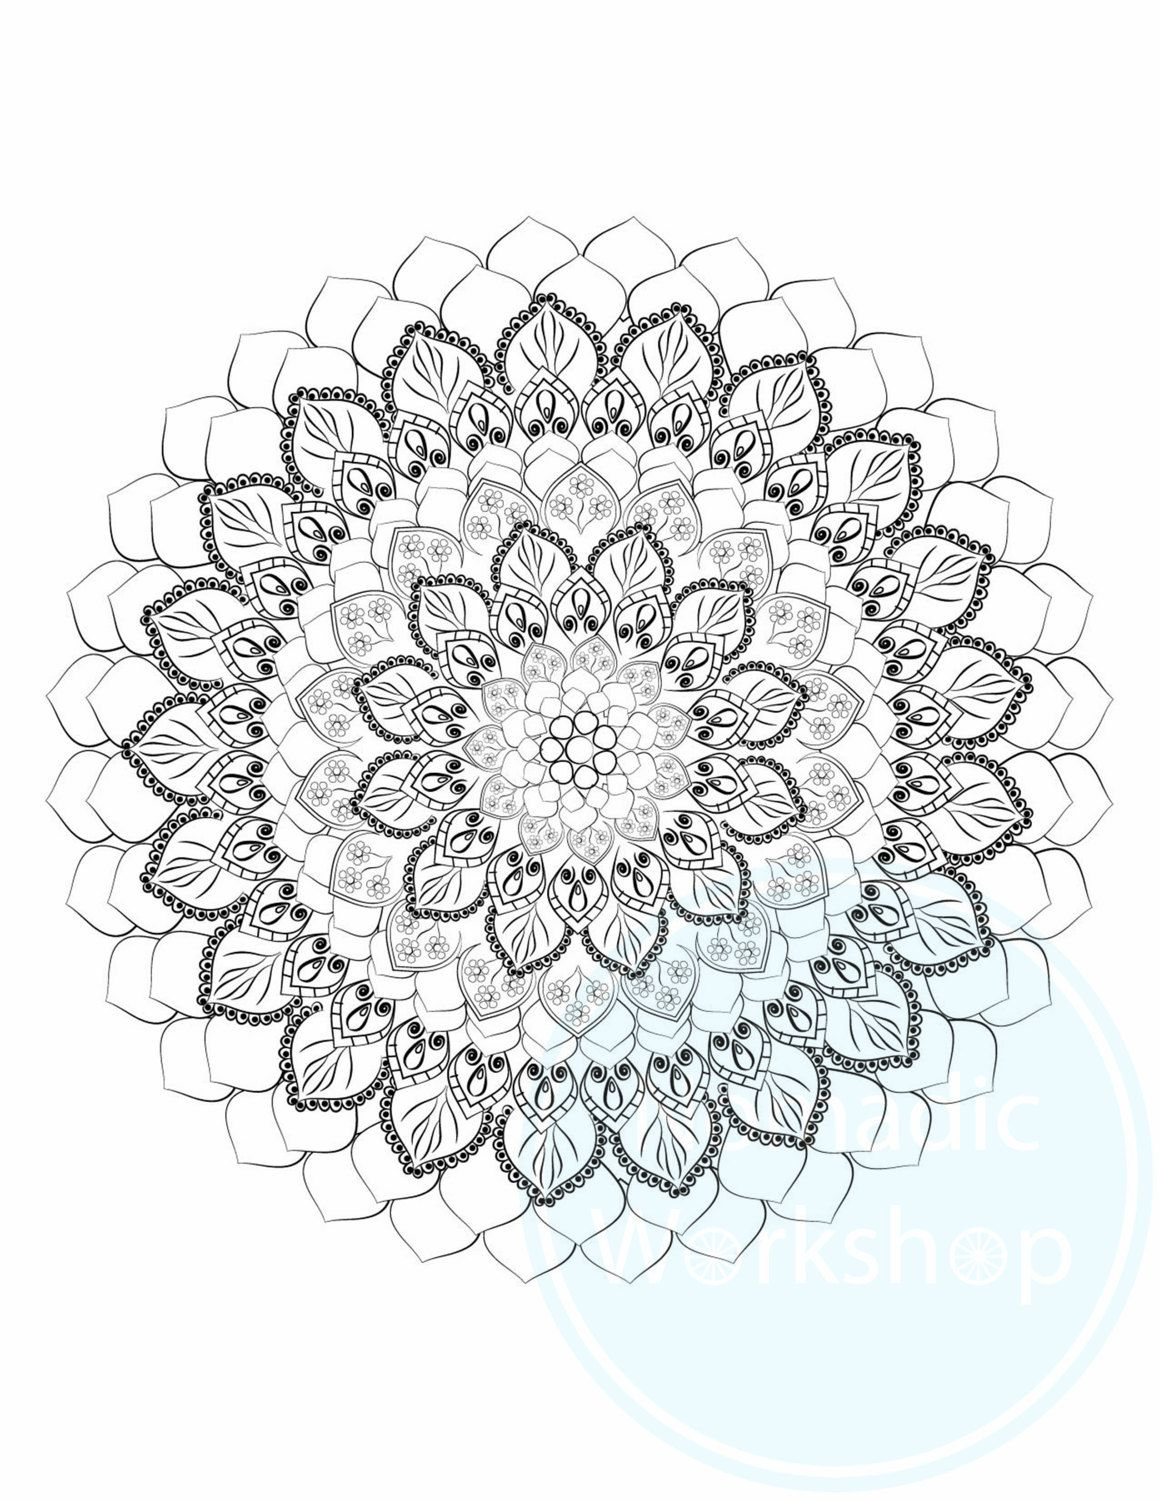 Mandala coloring pages printable for adults Mandala